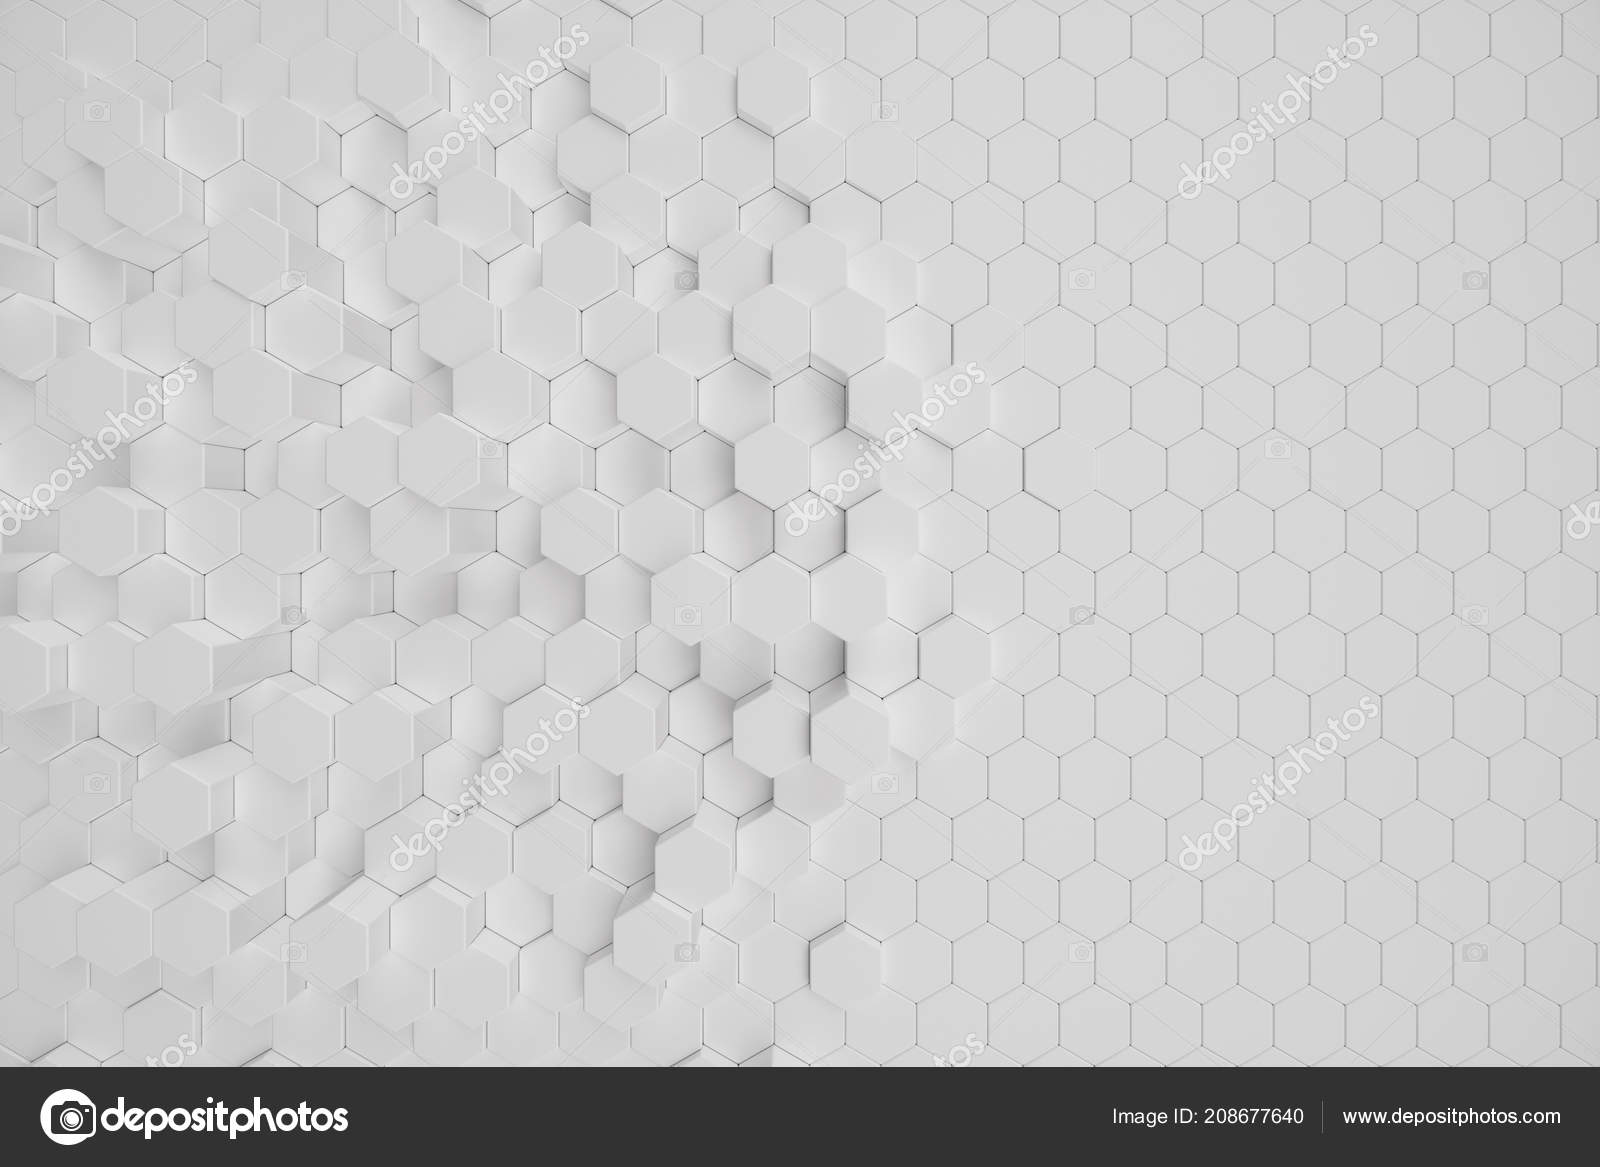 3d illustration white geometric hexagonal abstract background